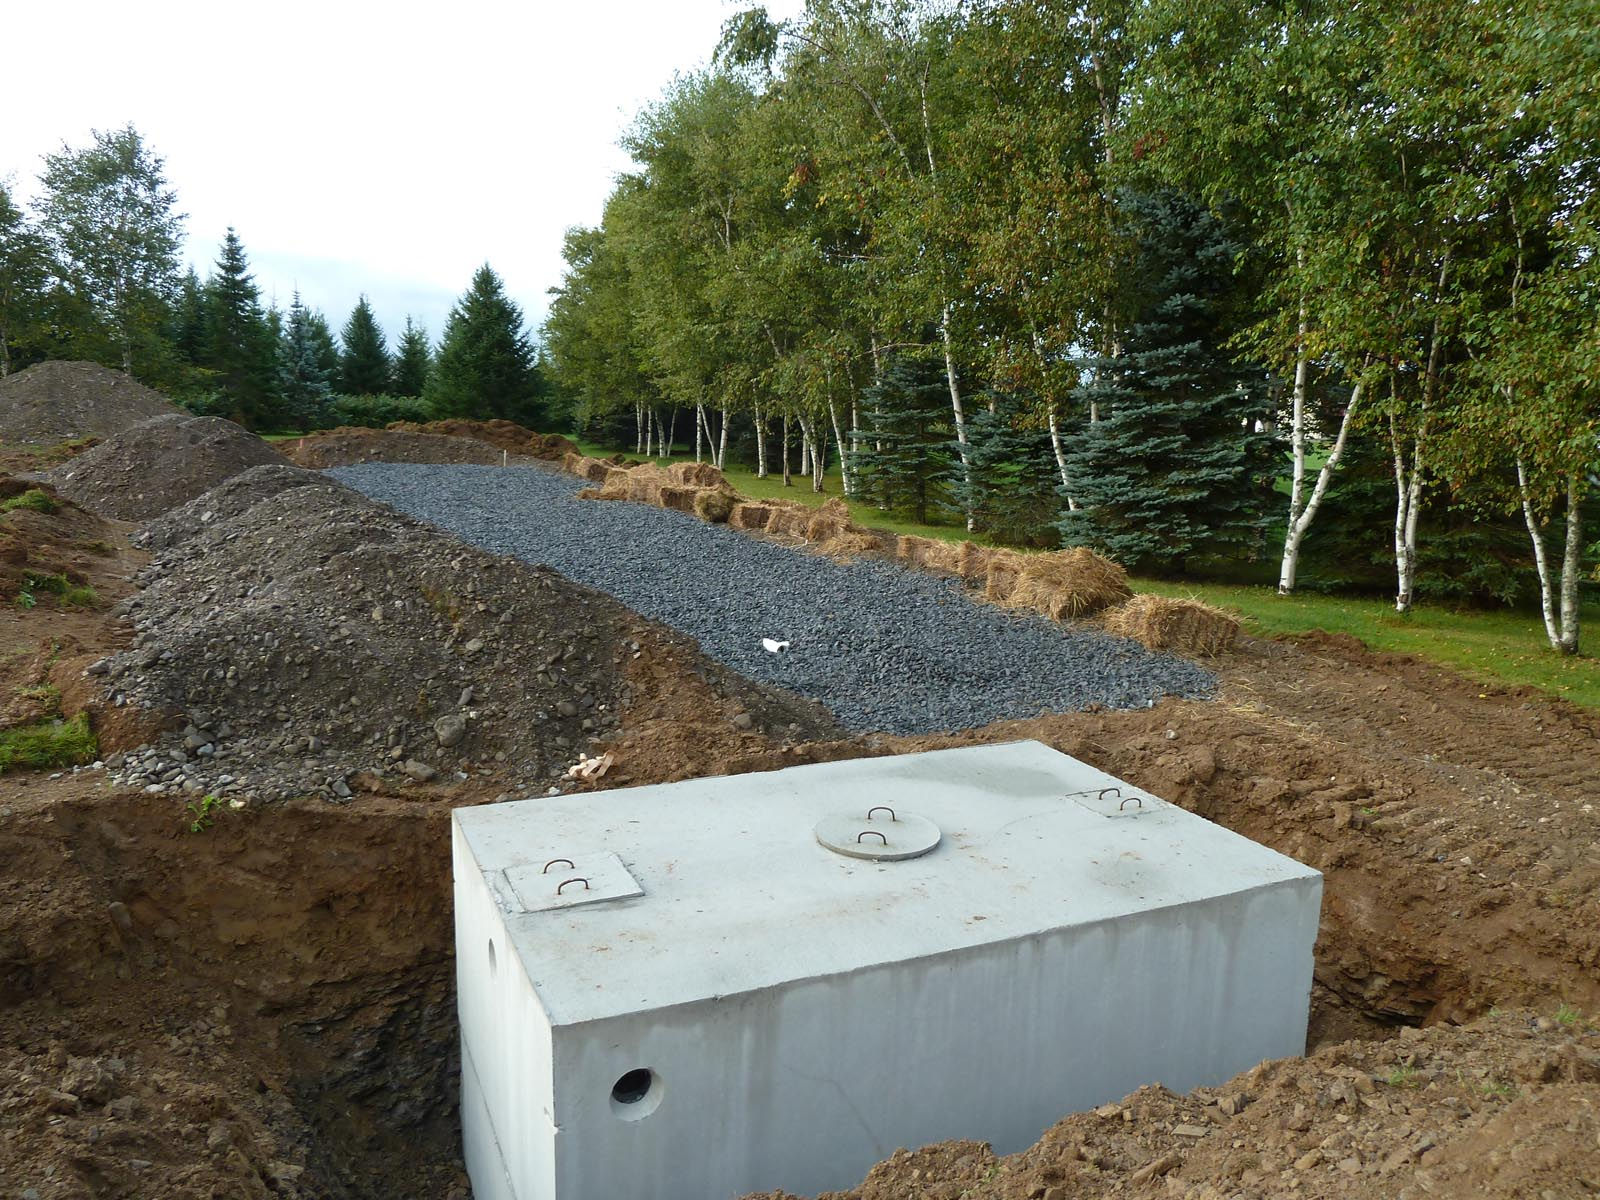 Concrete Forms Radiant Heat And Septic Tank Quadomated